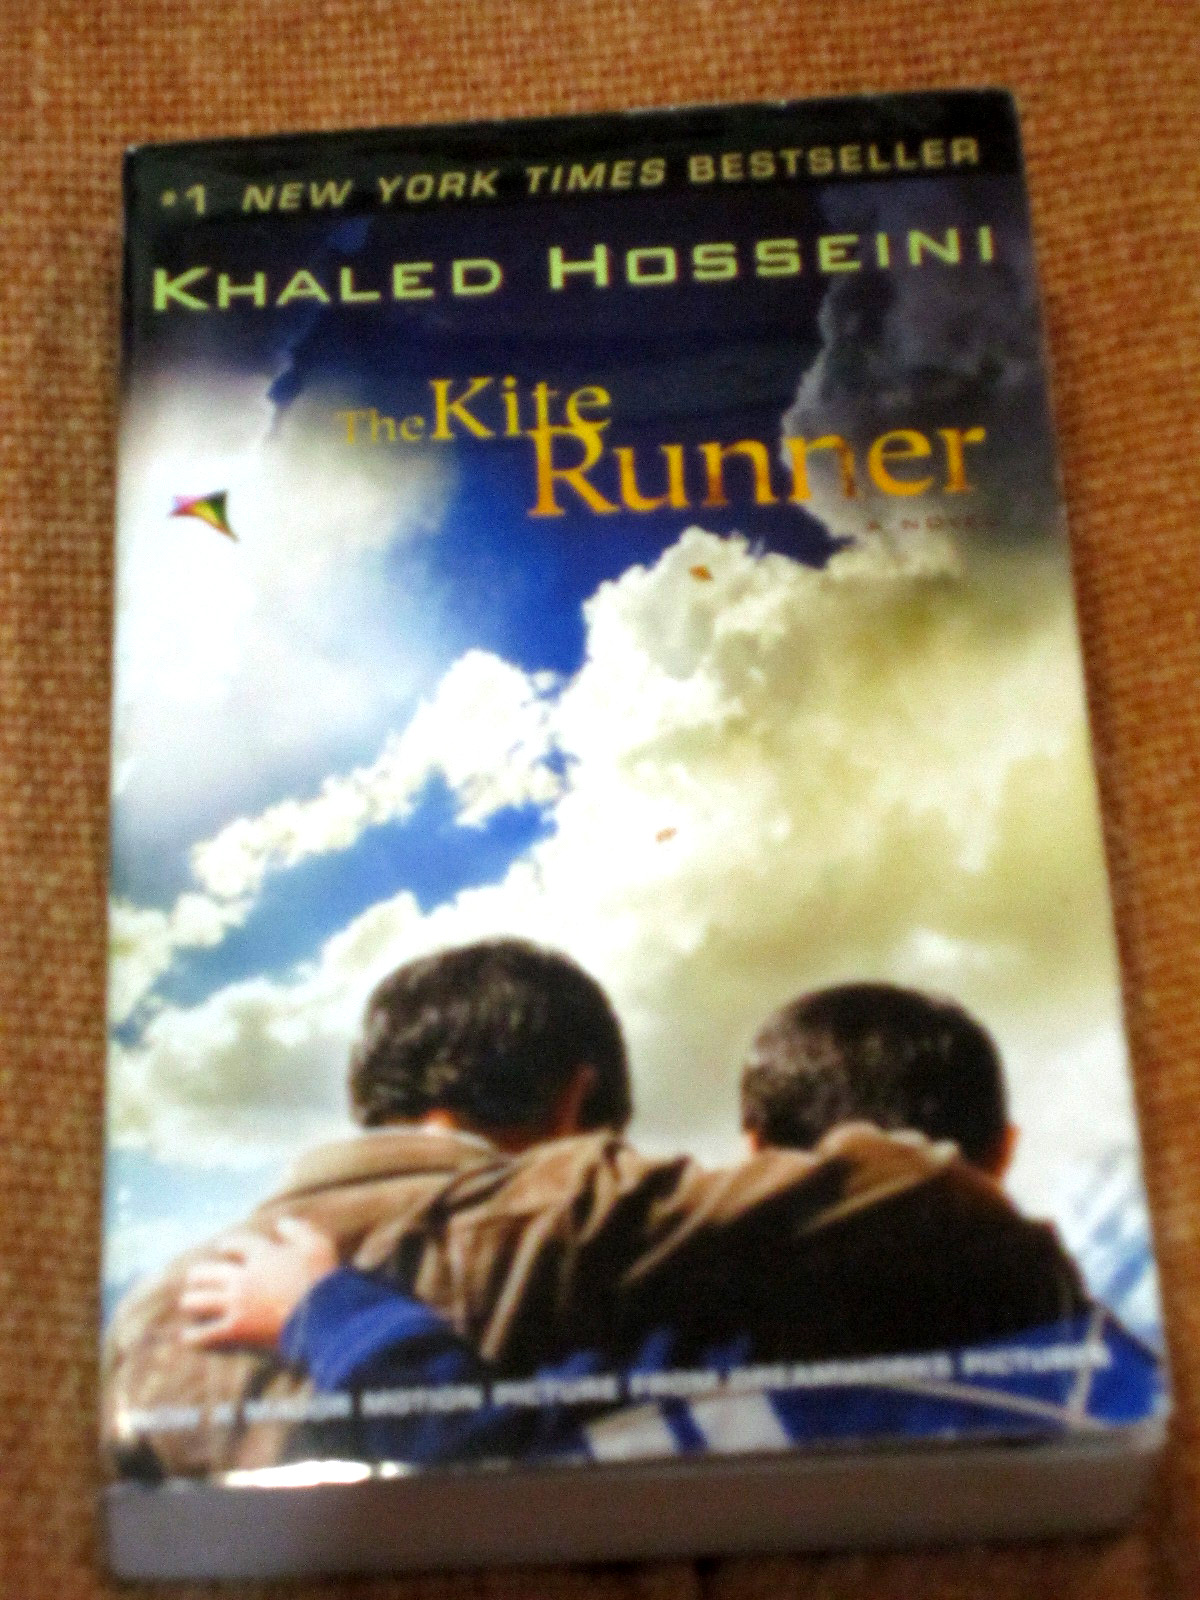 escapist ojaesama book review 3 the kite runner book title the kite runner author khaled hosseini